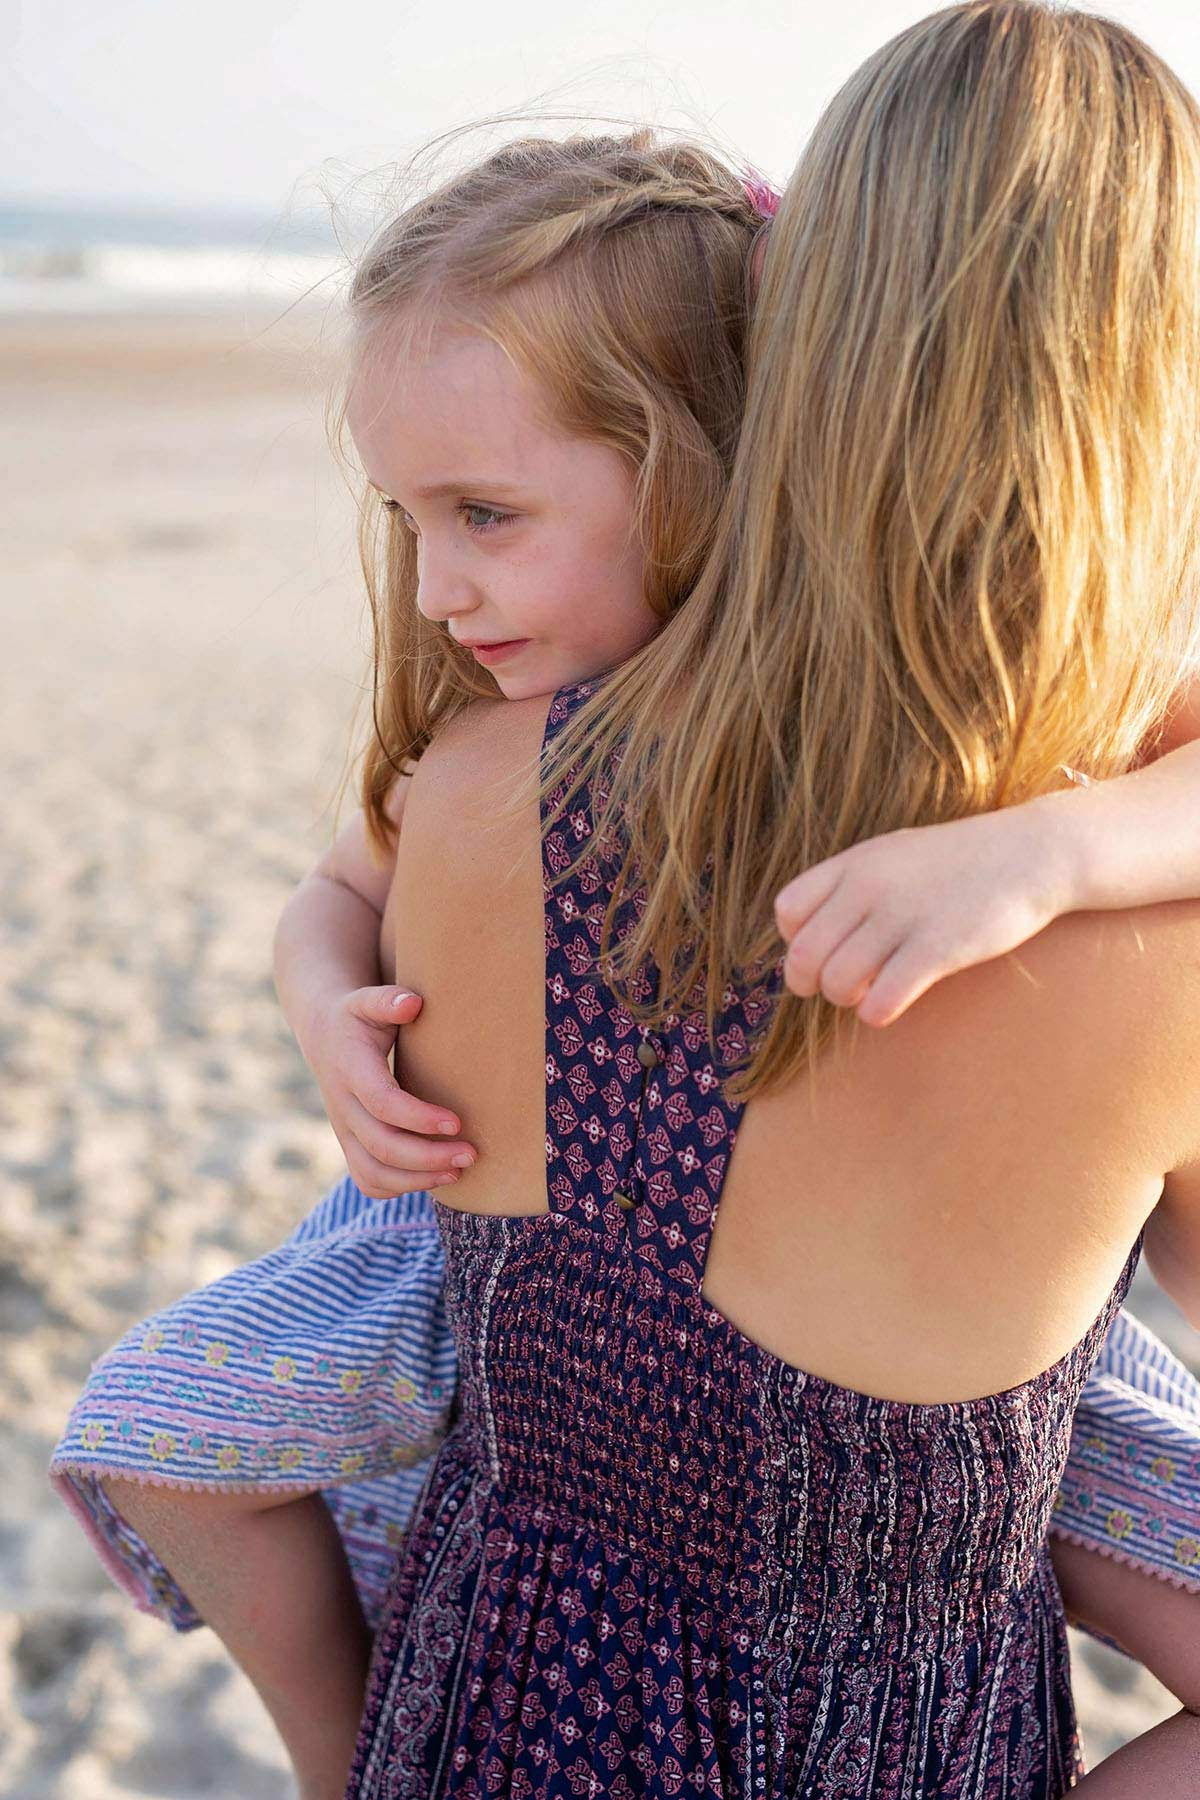 little_girl_clings_to_mother_on_beach_in_ocnj.jpg